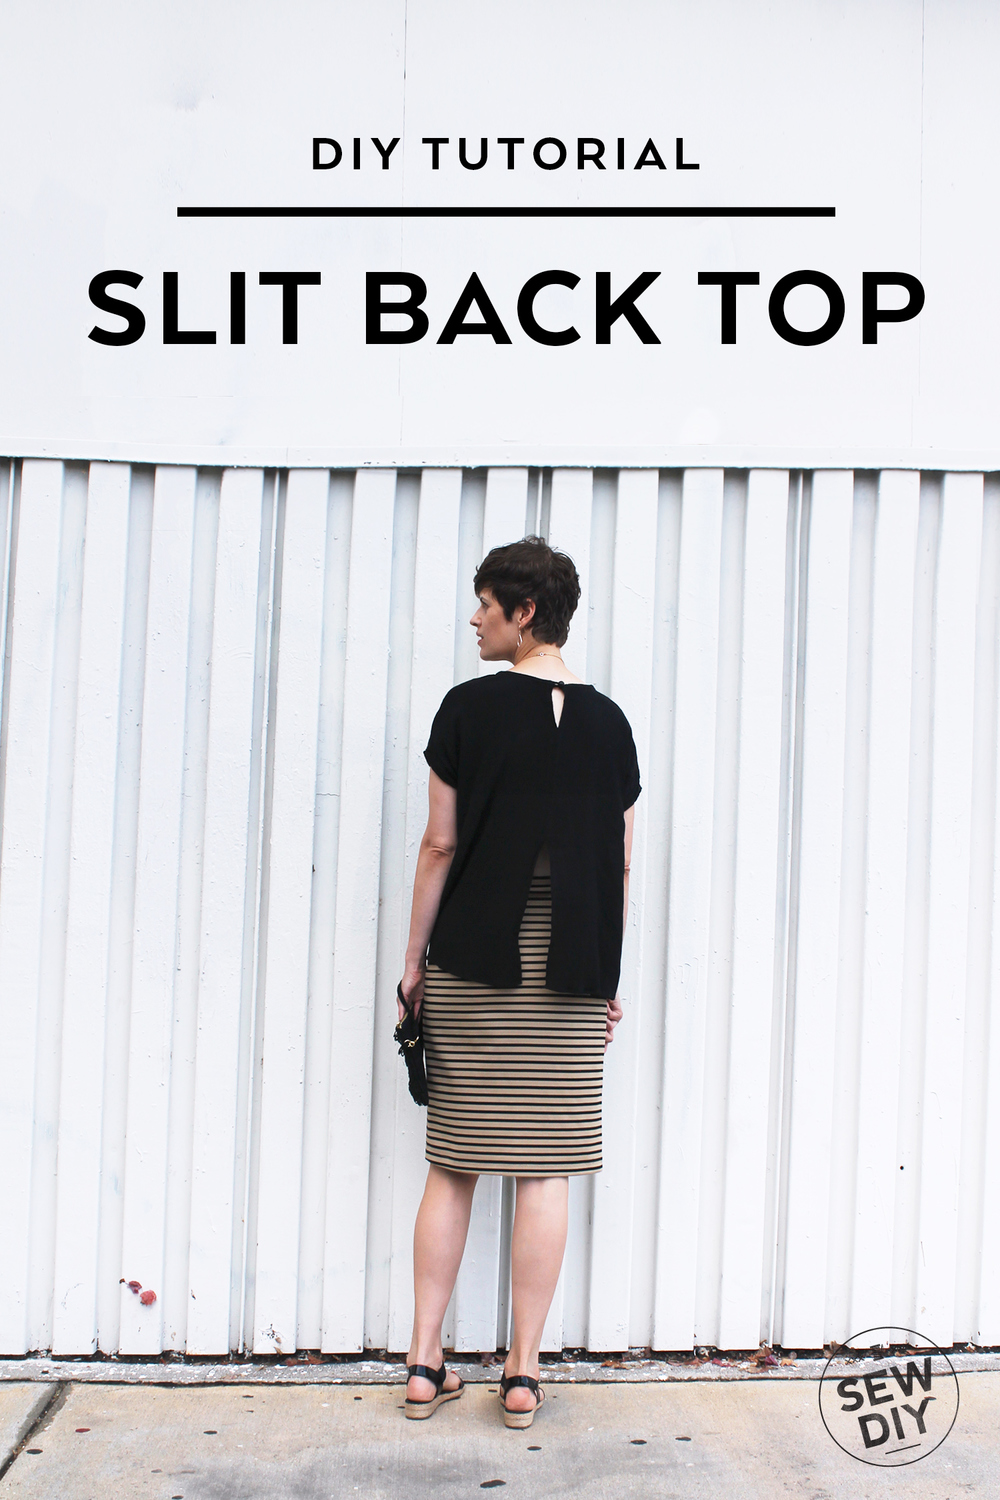 DIY Tutorial – Slit Back Top | Sew DIY